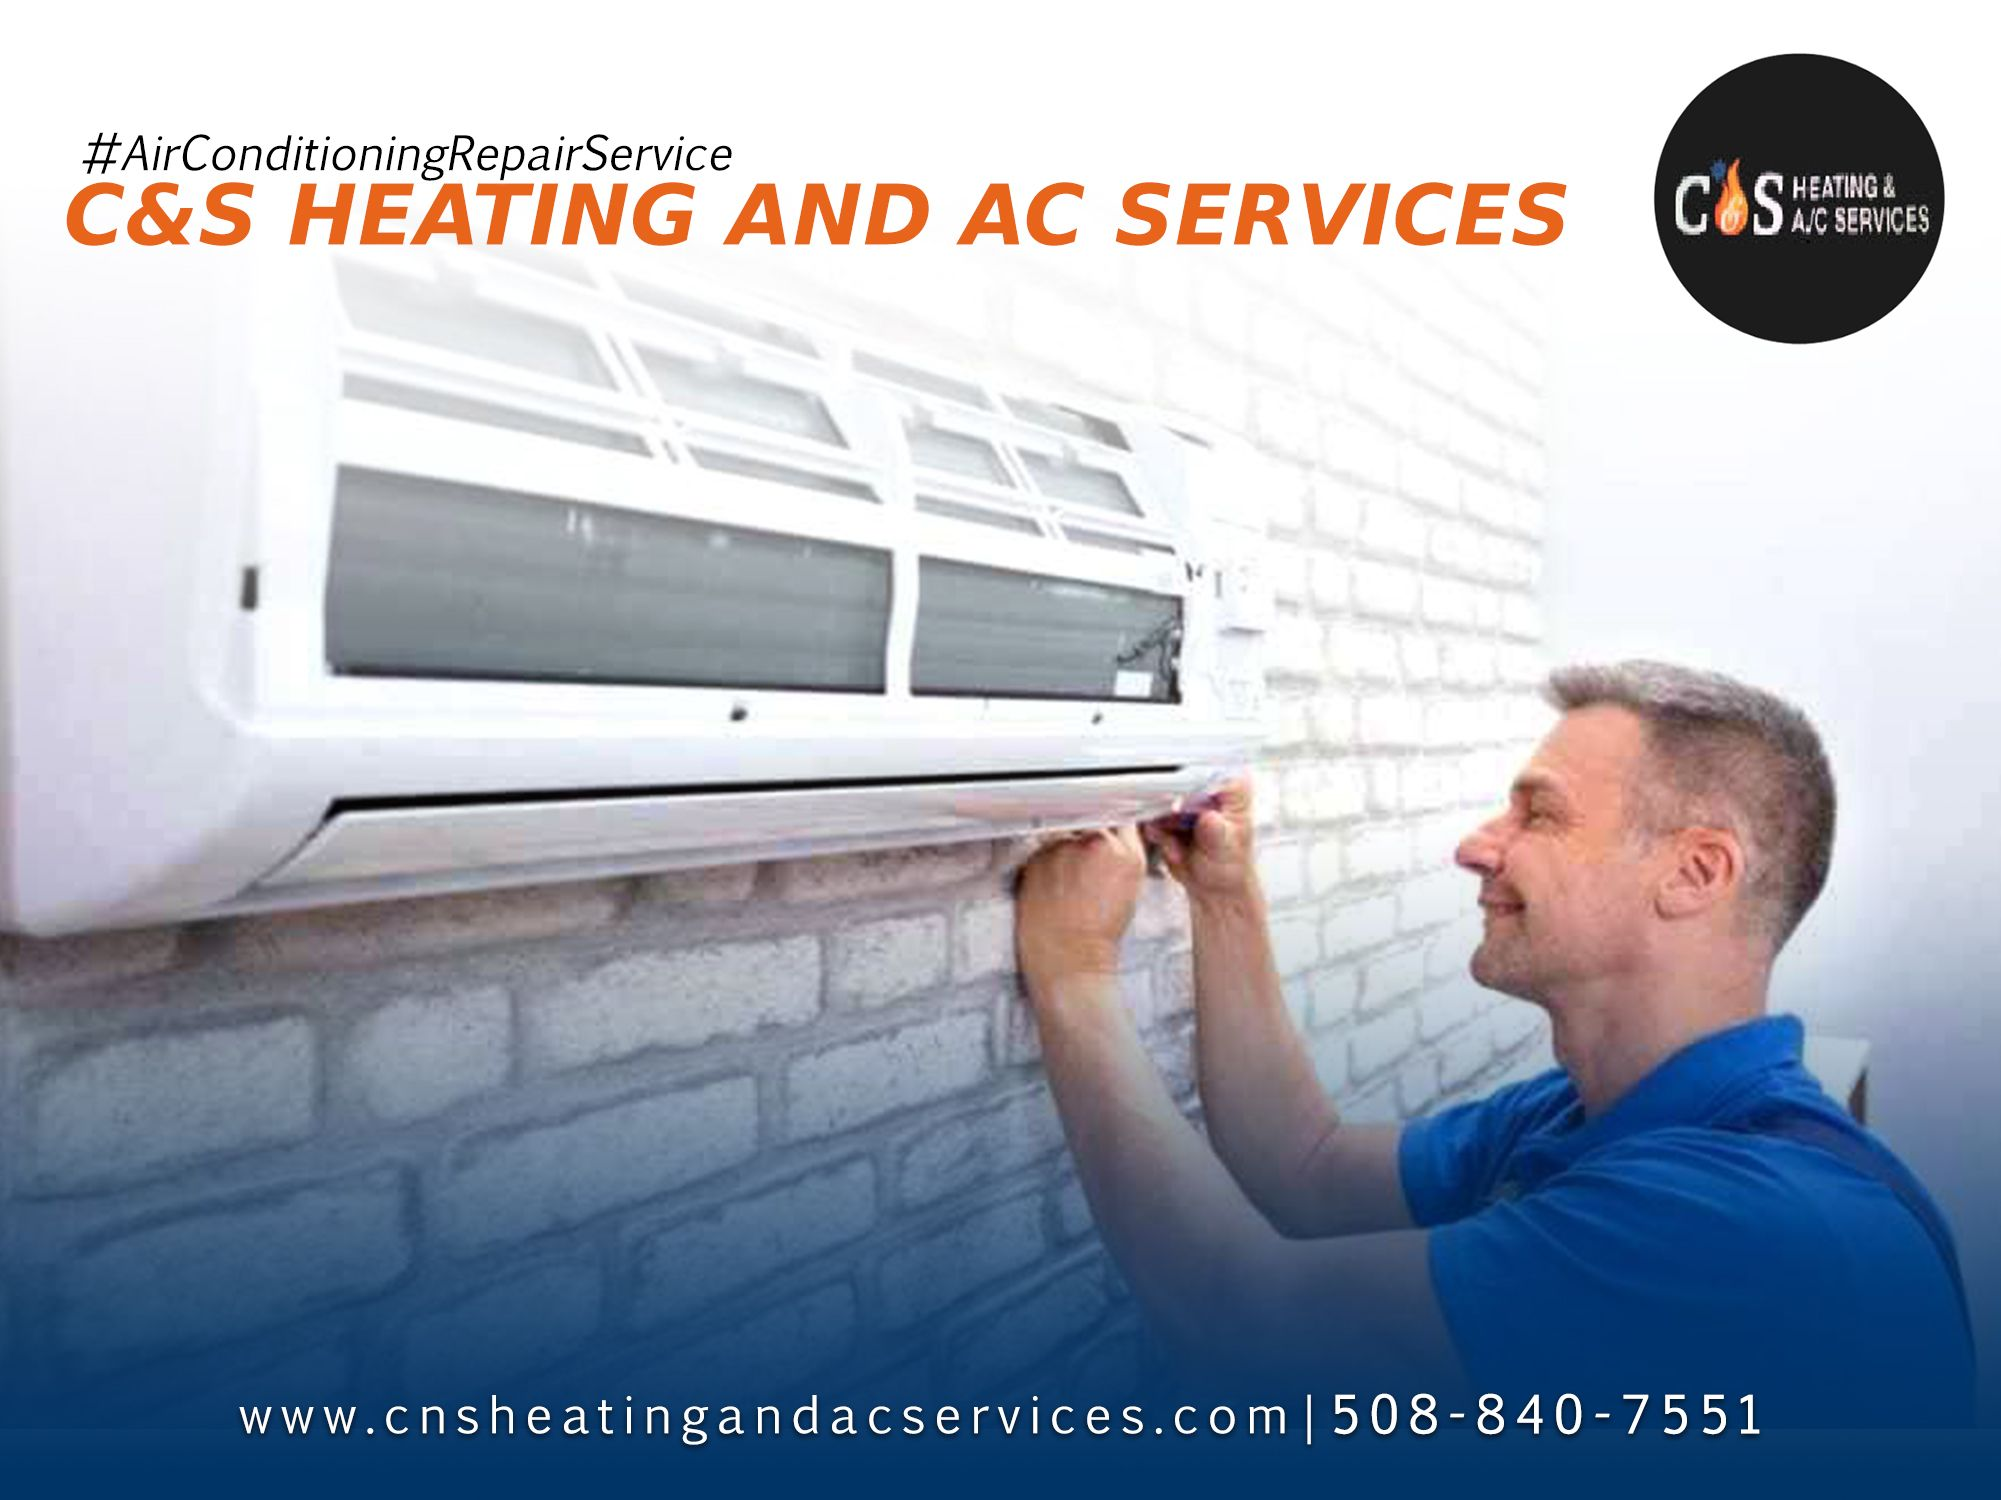 Air Conditioning Contractor Heating Services Ac Service Ac Repair Services